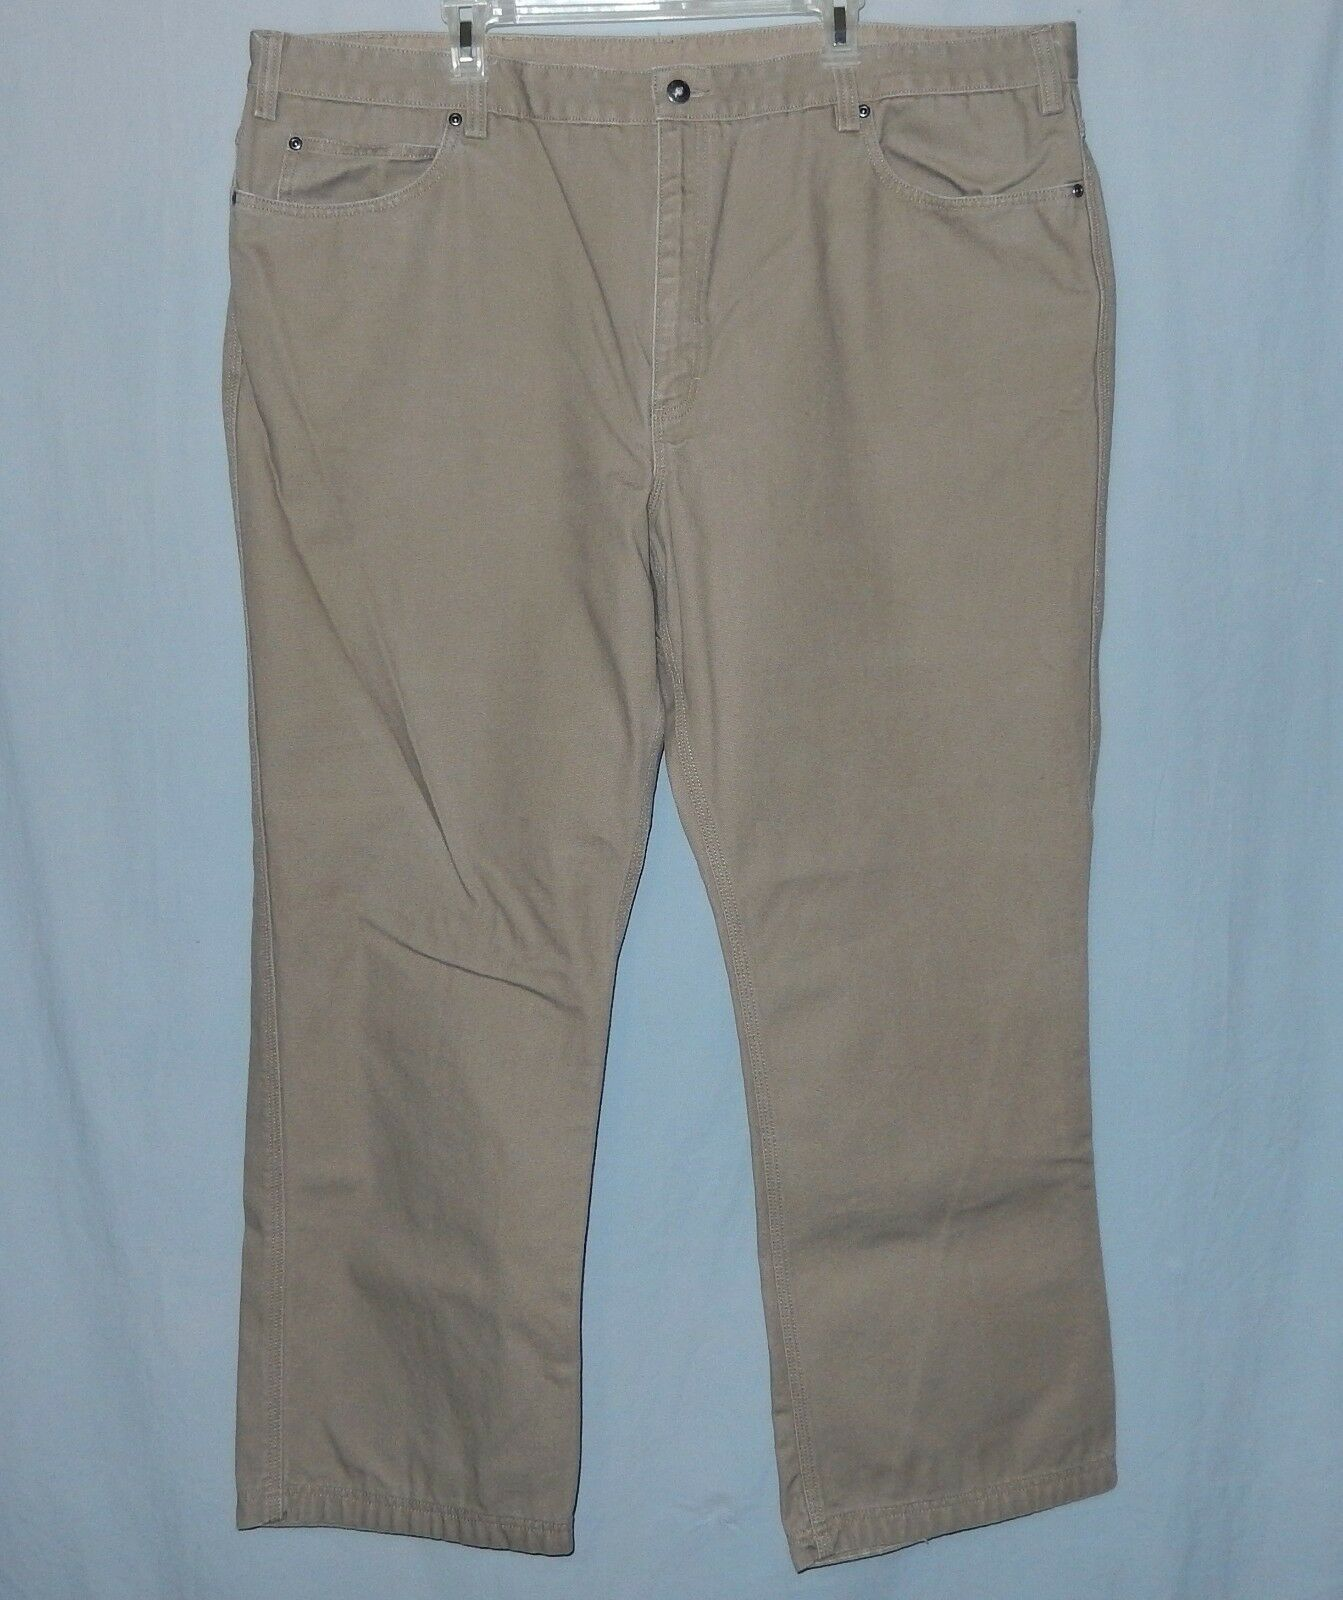 Mens Duluth Trading Company Pants Size 44 X 30 Work Utility Canvas Brown Tag 48